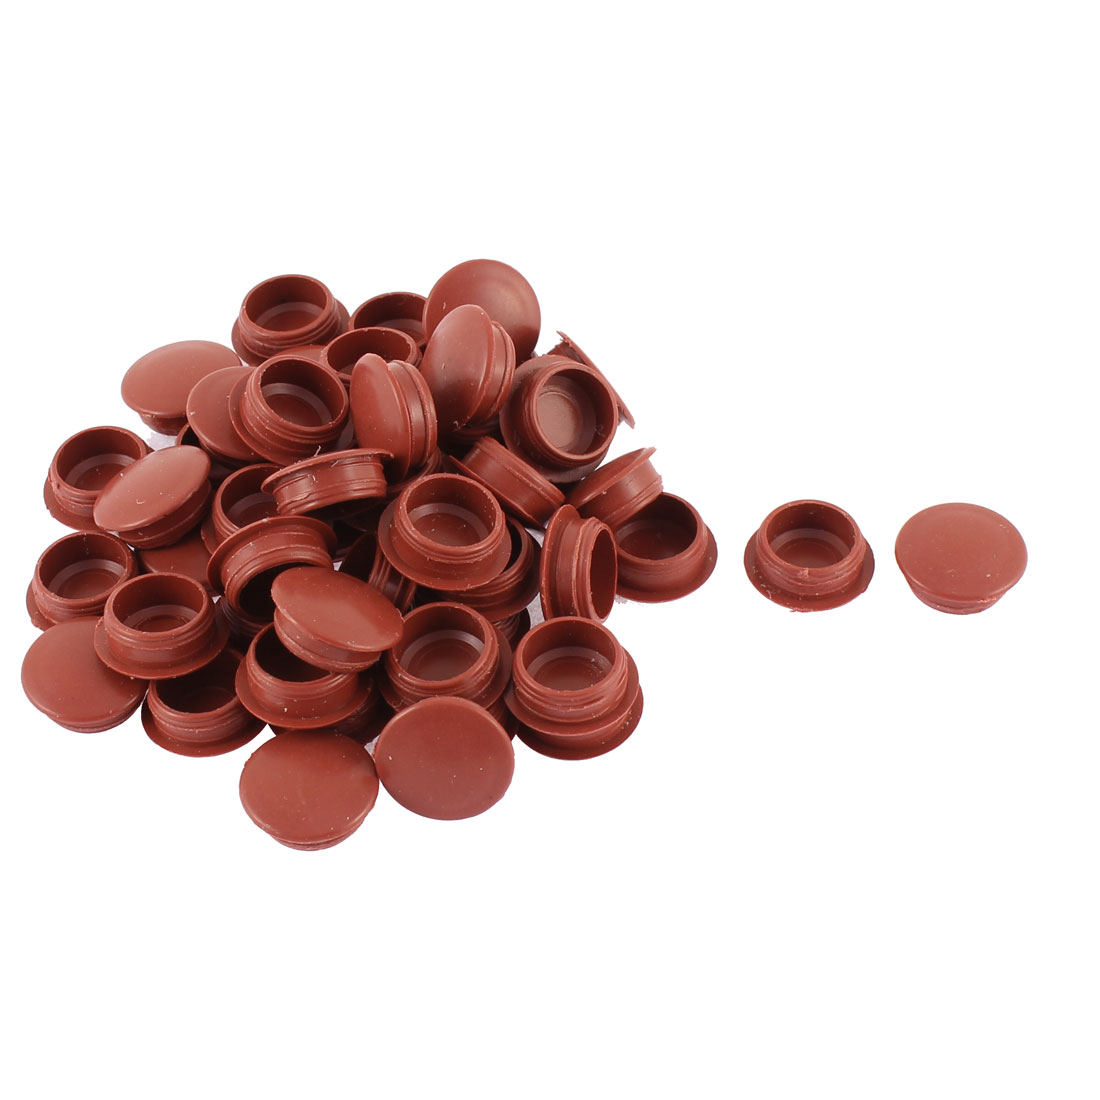 Hole End Cap Cover Pipe Tube Inserts Tidying Tool 50pcs for Desk Table